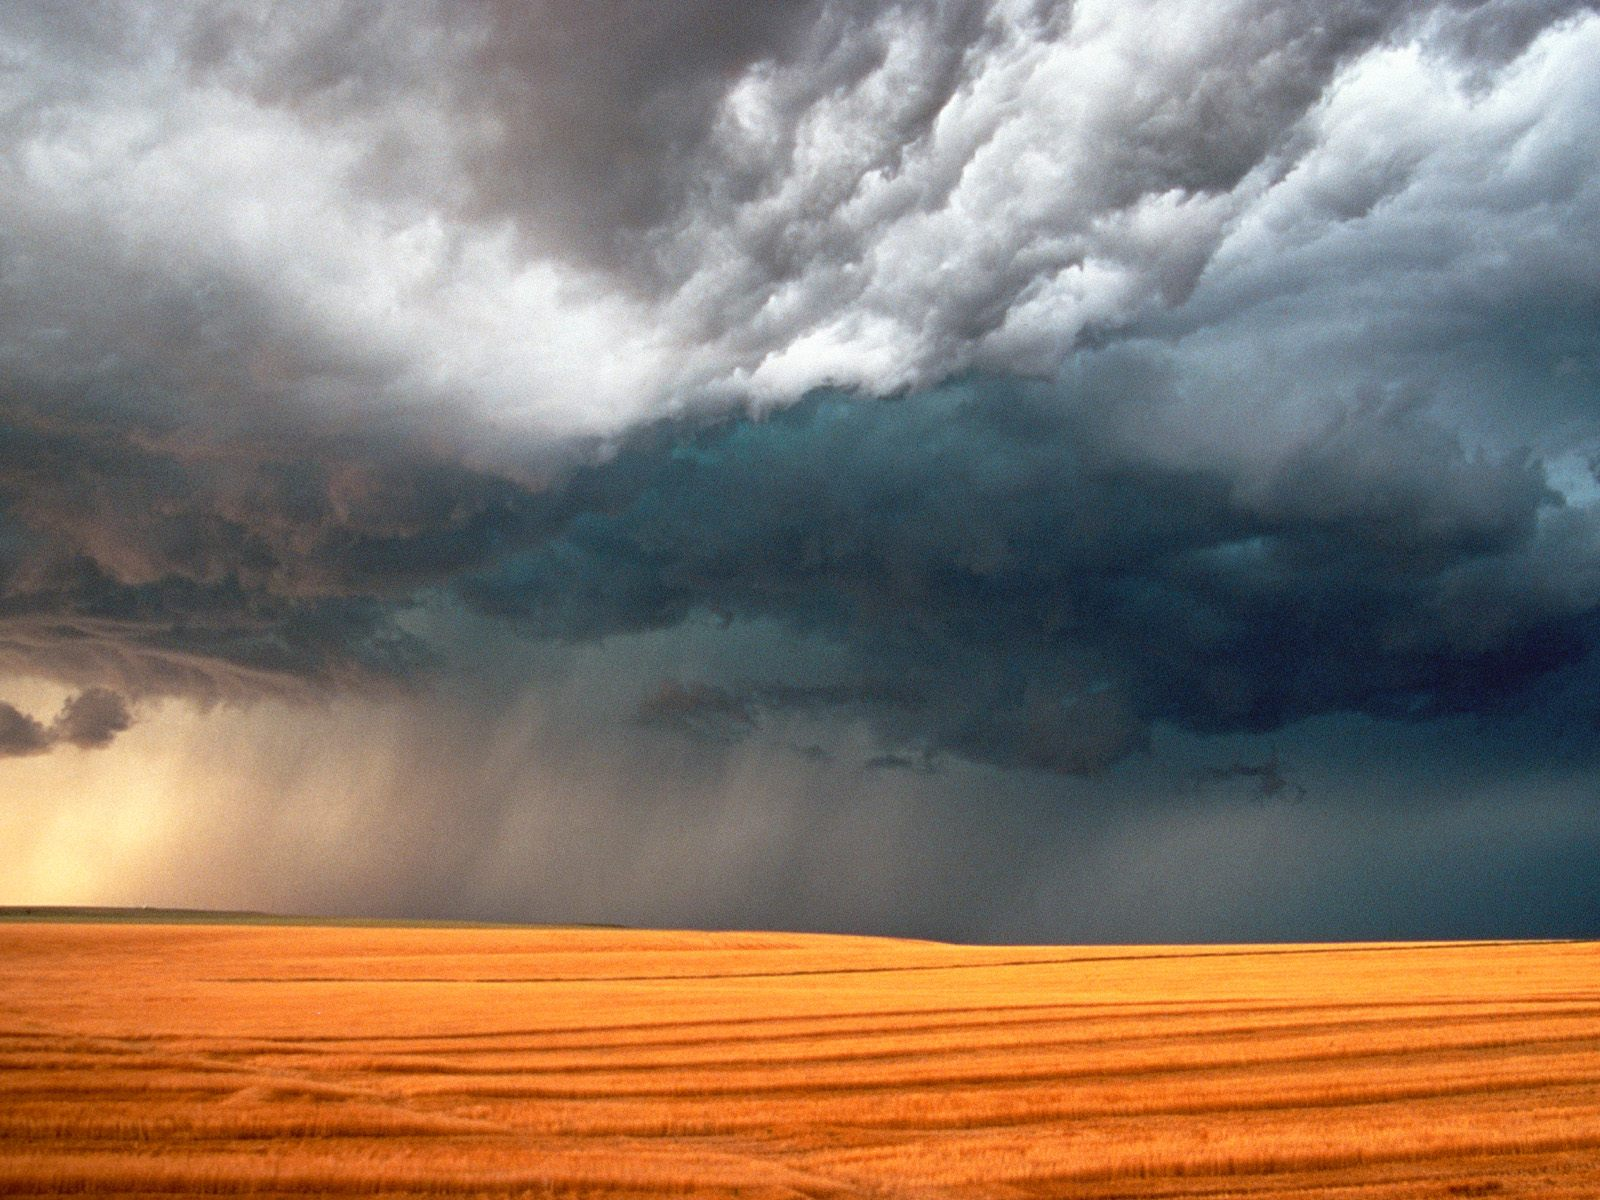 14 Severe Weather Photography Images